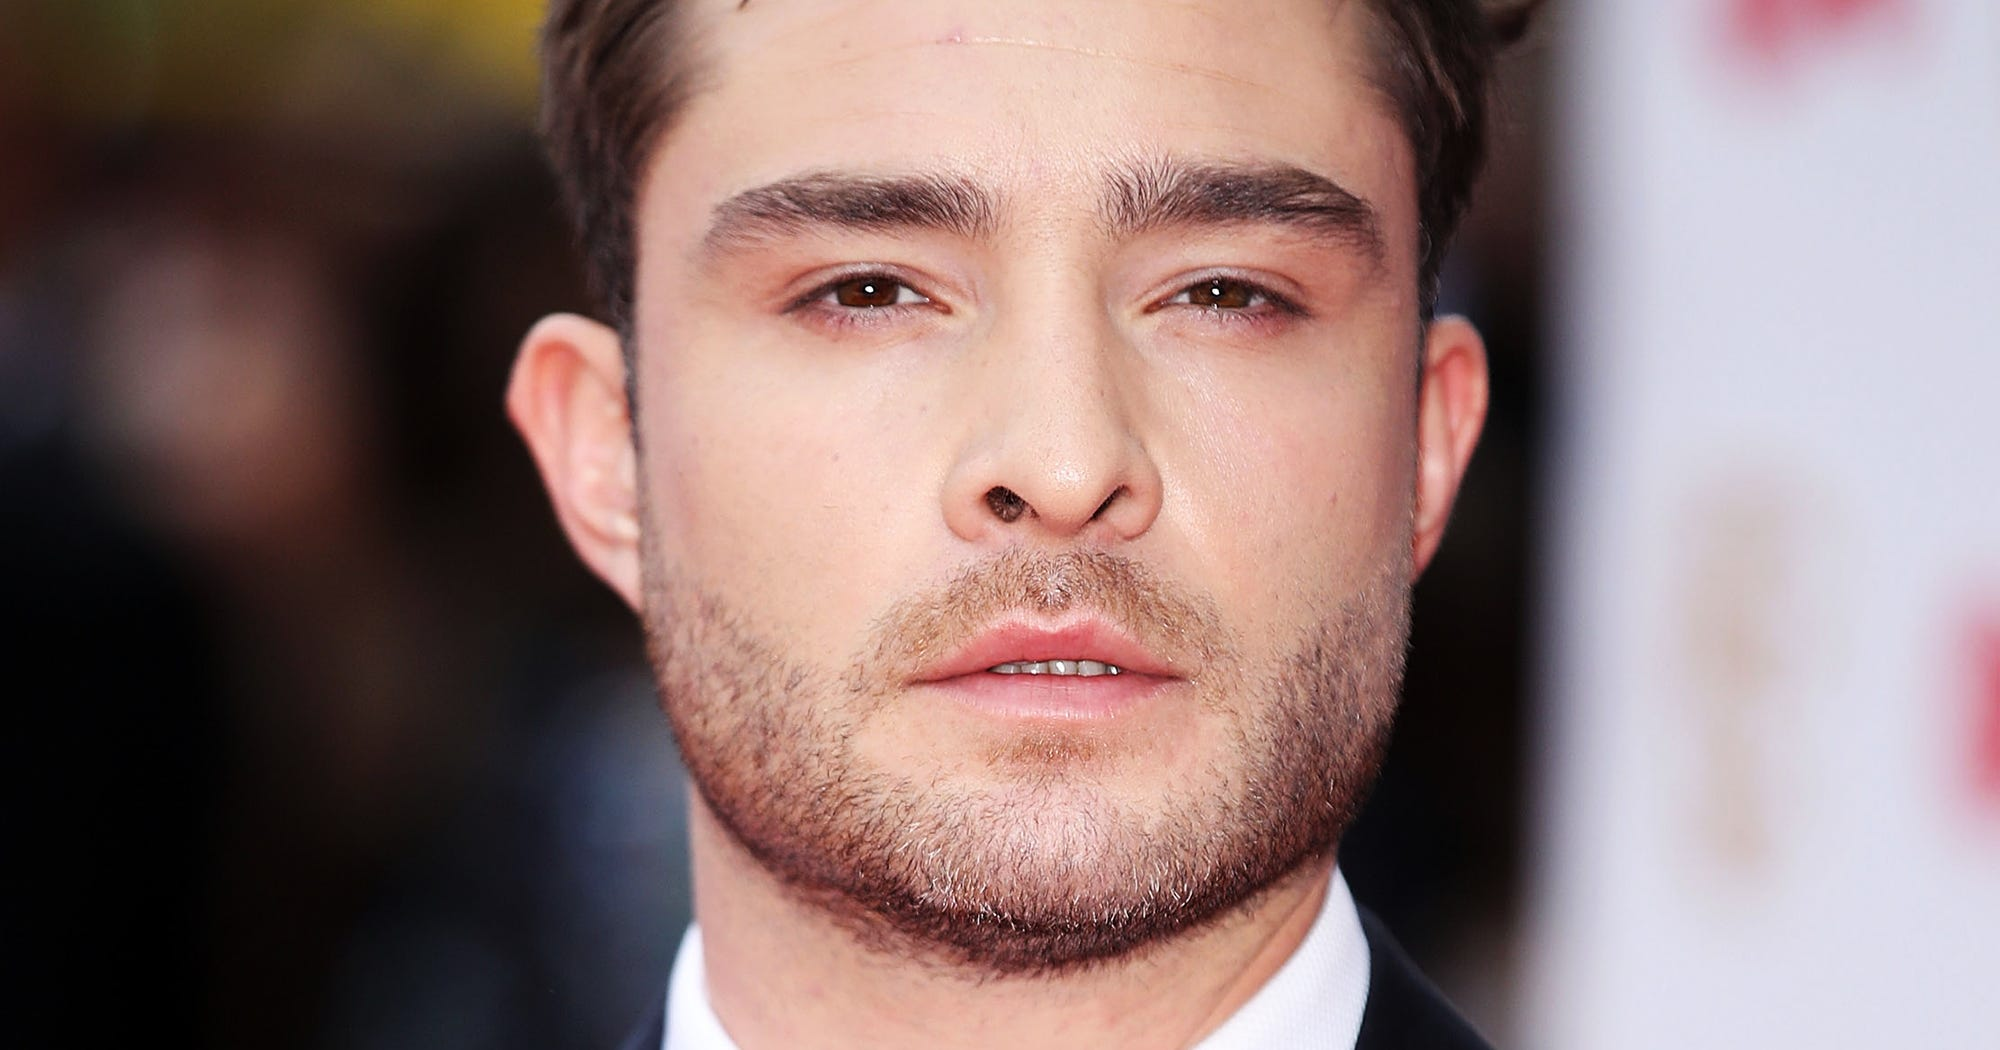 A Fourth Woman Has Accused Ed Westwick of Sexual Assault